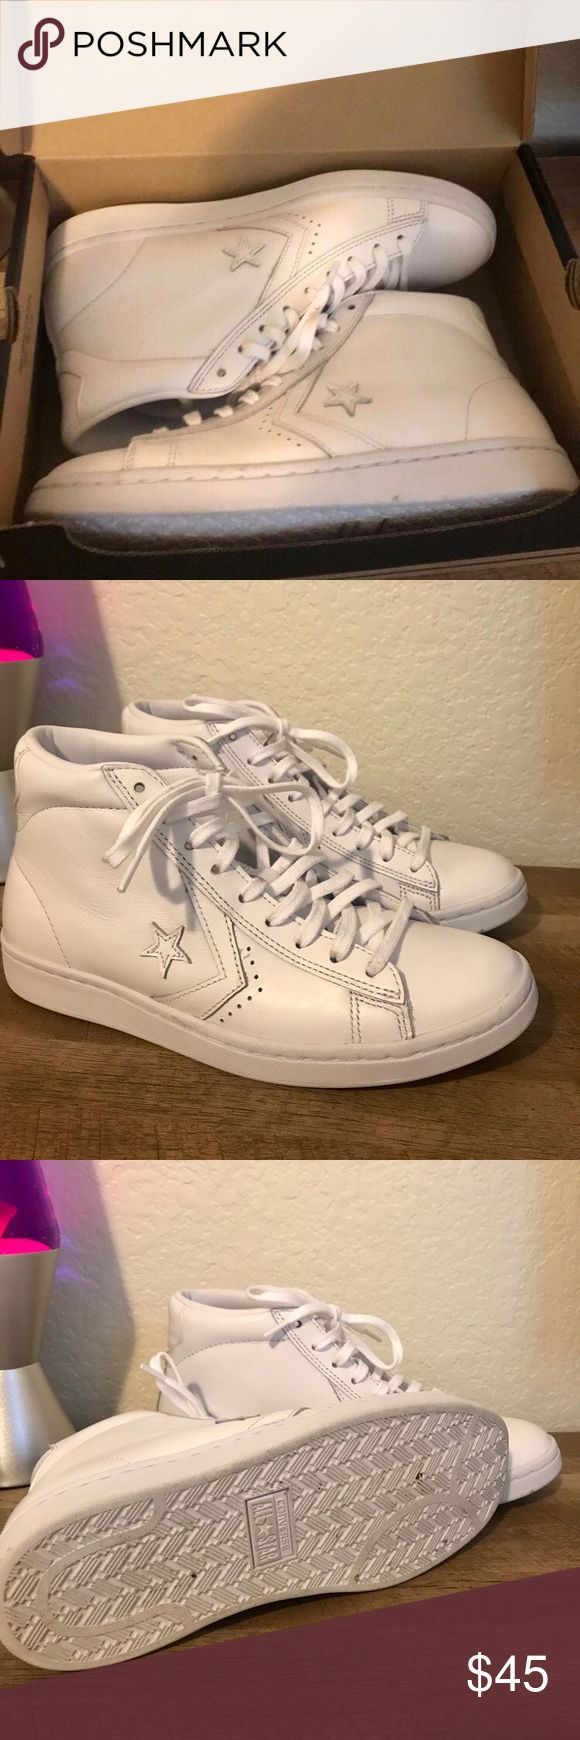 CONVERSE PRO LEATHER LOW PROFILE HIGH TOP Worn once!! Will come in box :) Converse Shoes